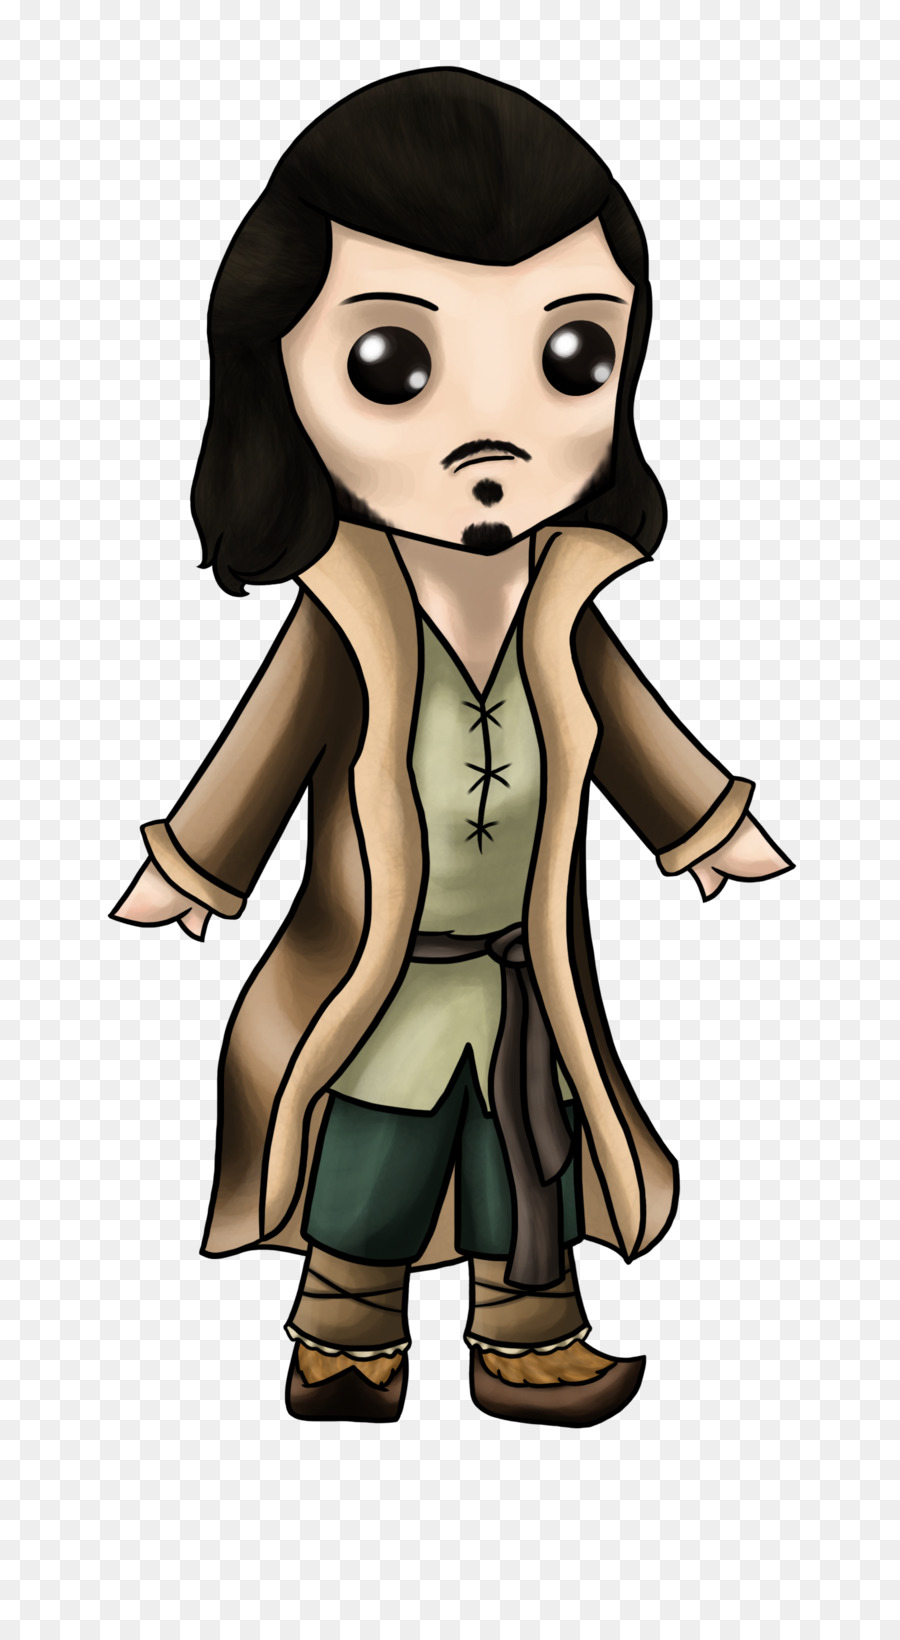 Female Black hair Cartoon - luke evans